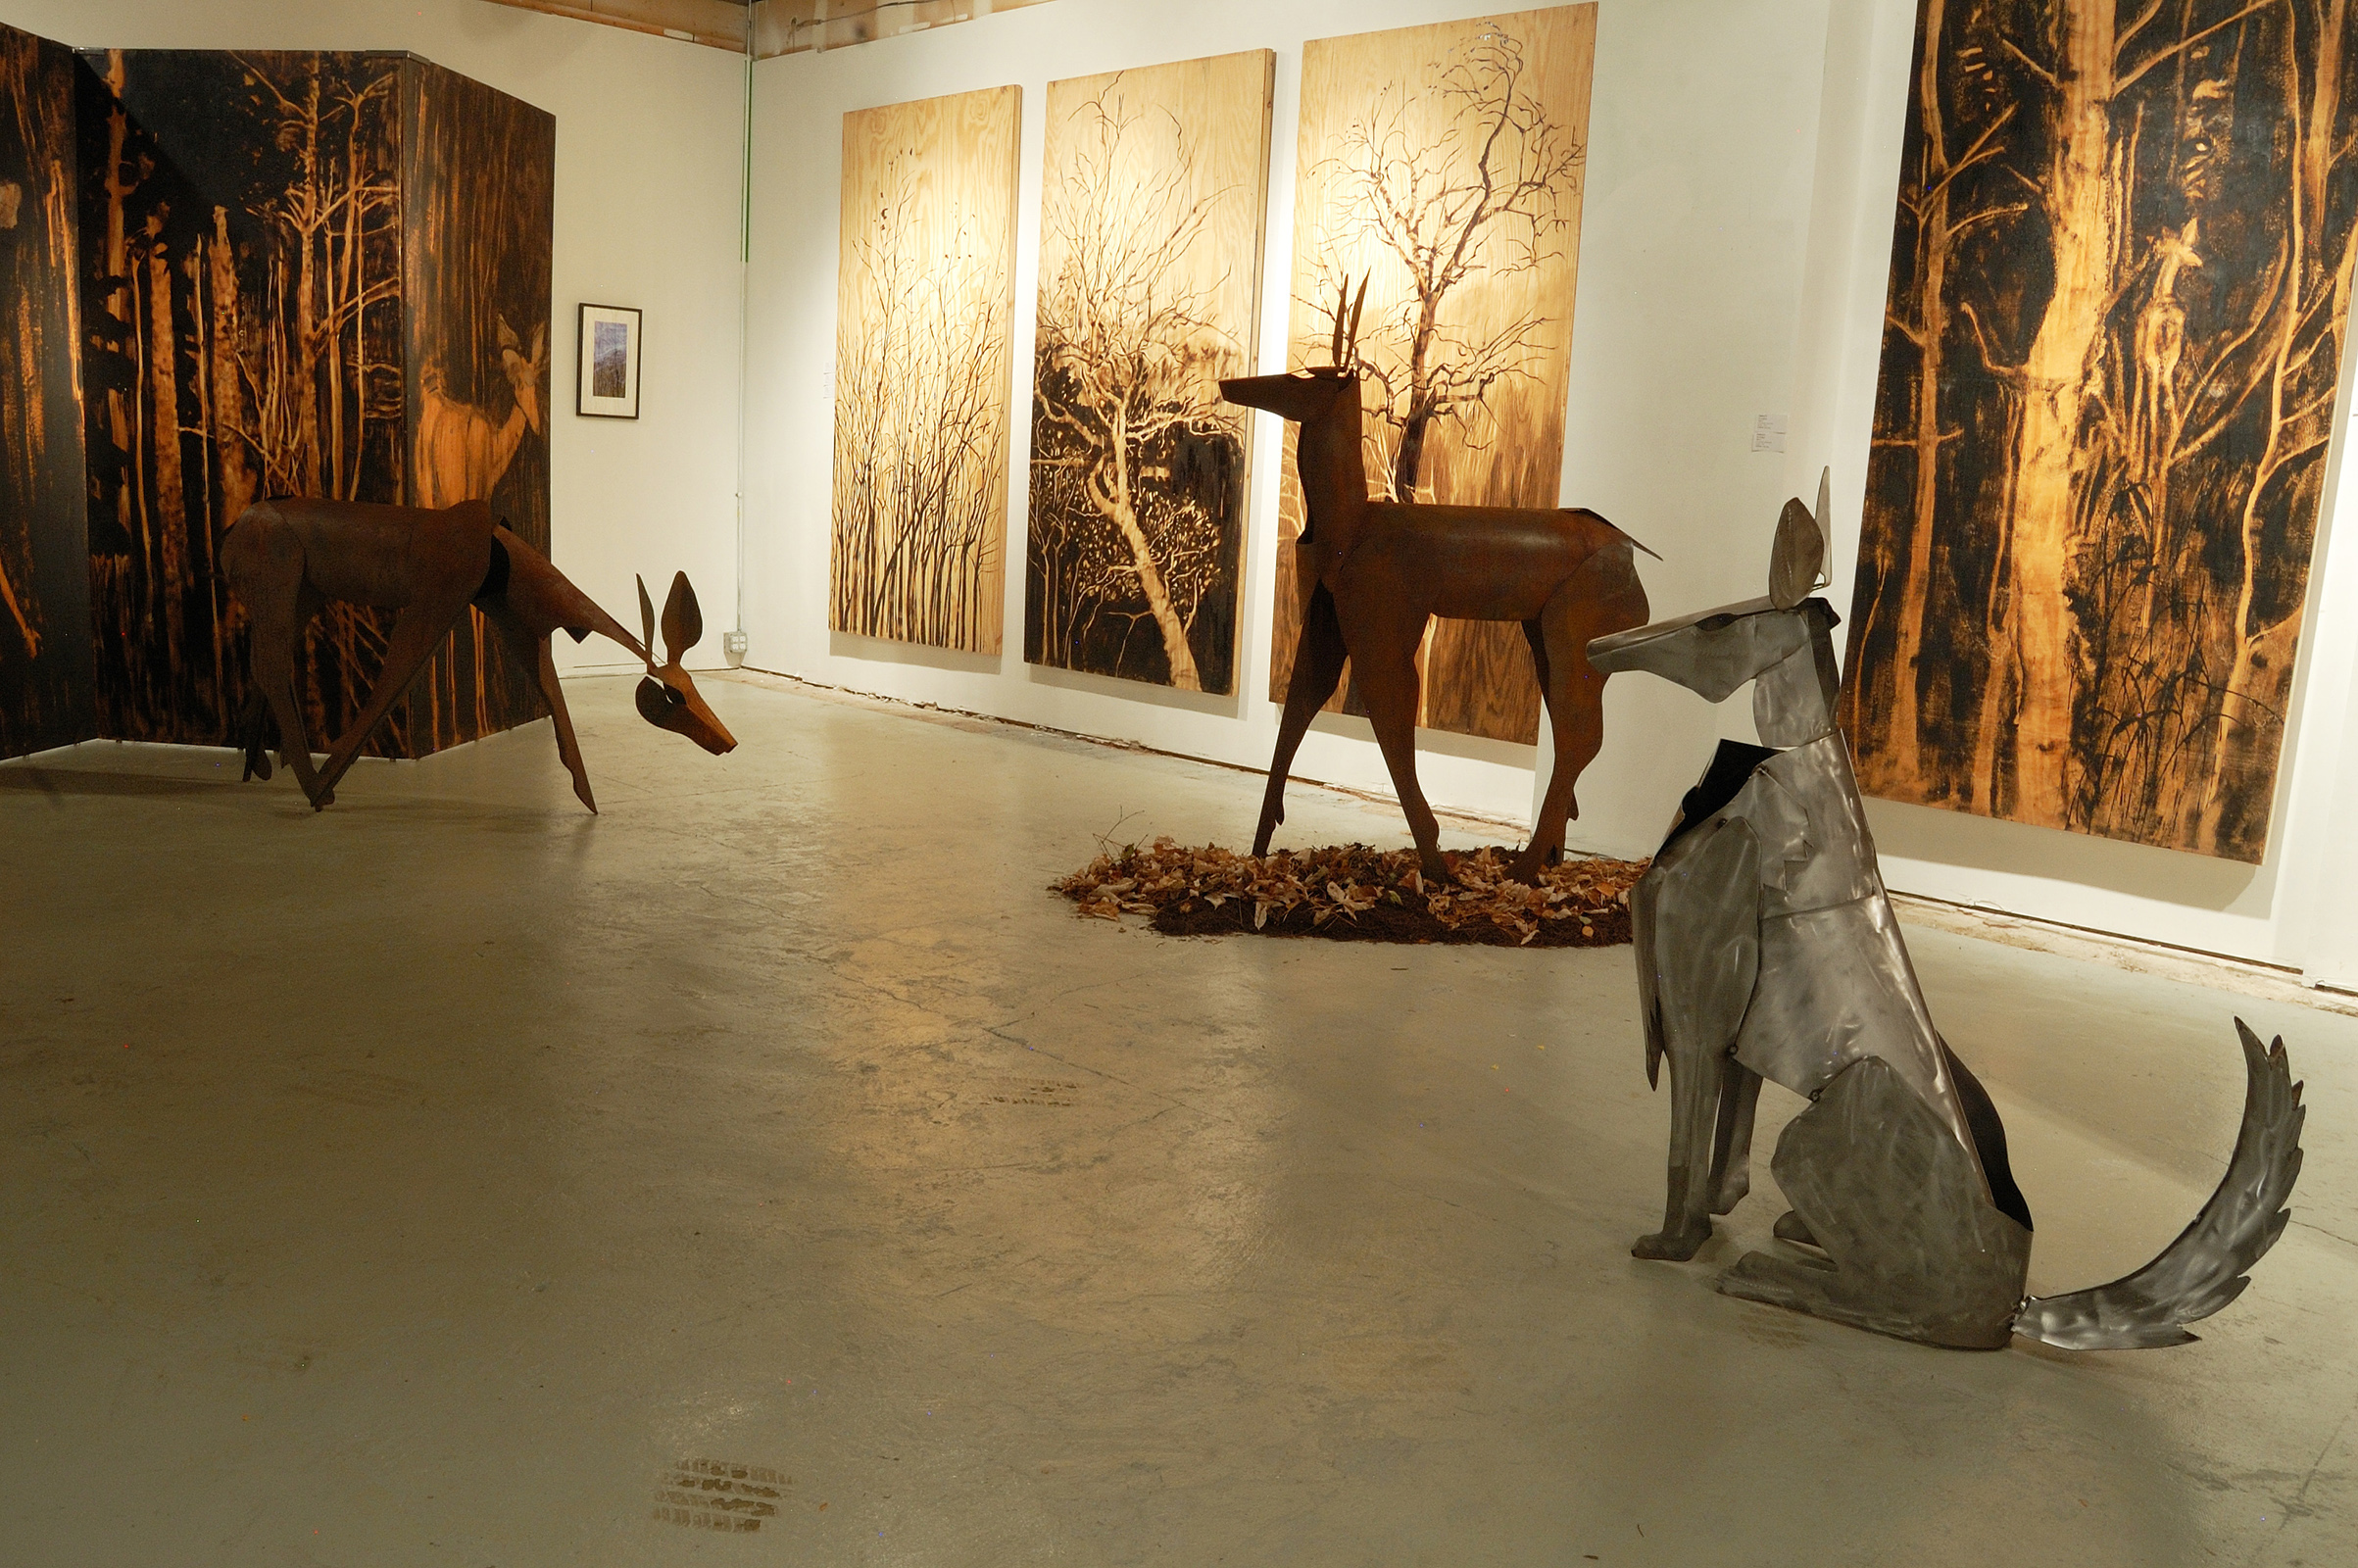 """Living Room"" was a one-person show at Gallery 13, 811 LaSalle St., Minneapolis, MN.  The animals are life-size, Corten steel, the panels, both freestanding  and wall-hung, are each 4' x 8' plywood, painted in asphaltum. Here is the other wolf, seated, keeping an eye on the deer."